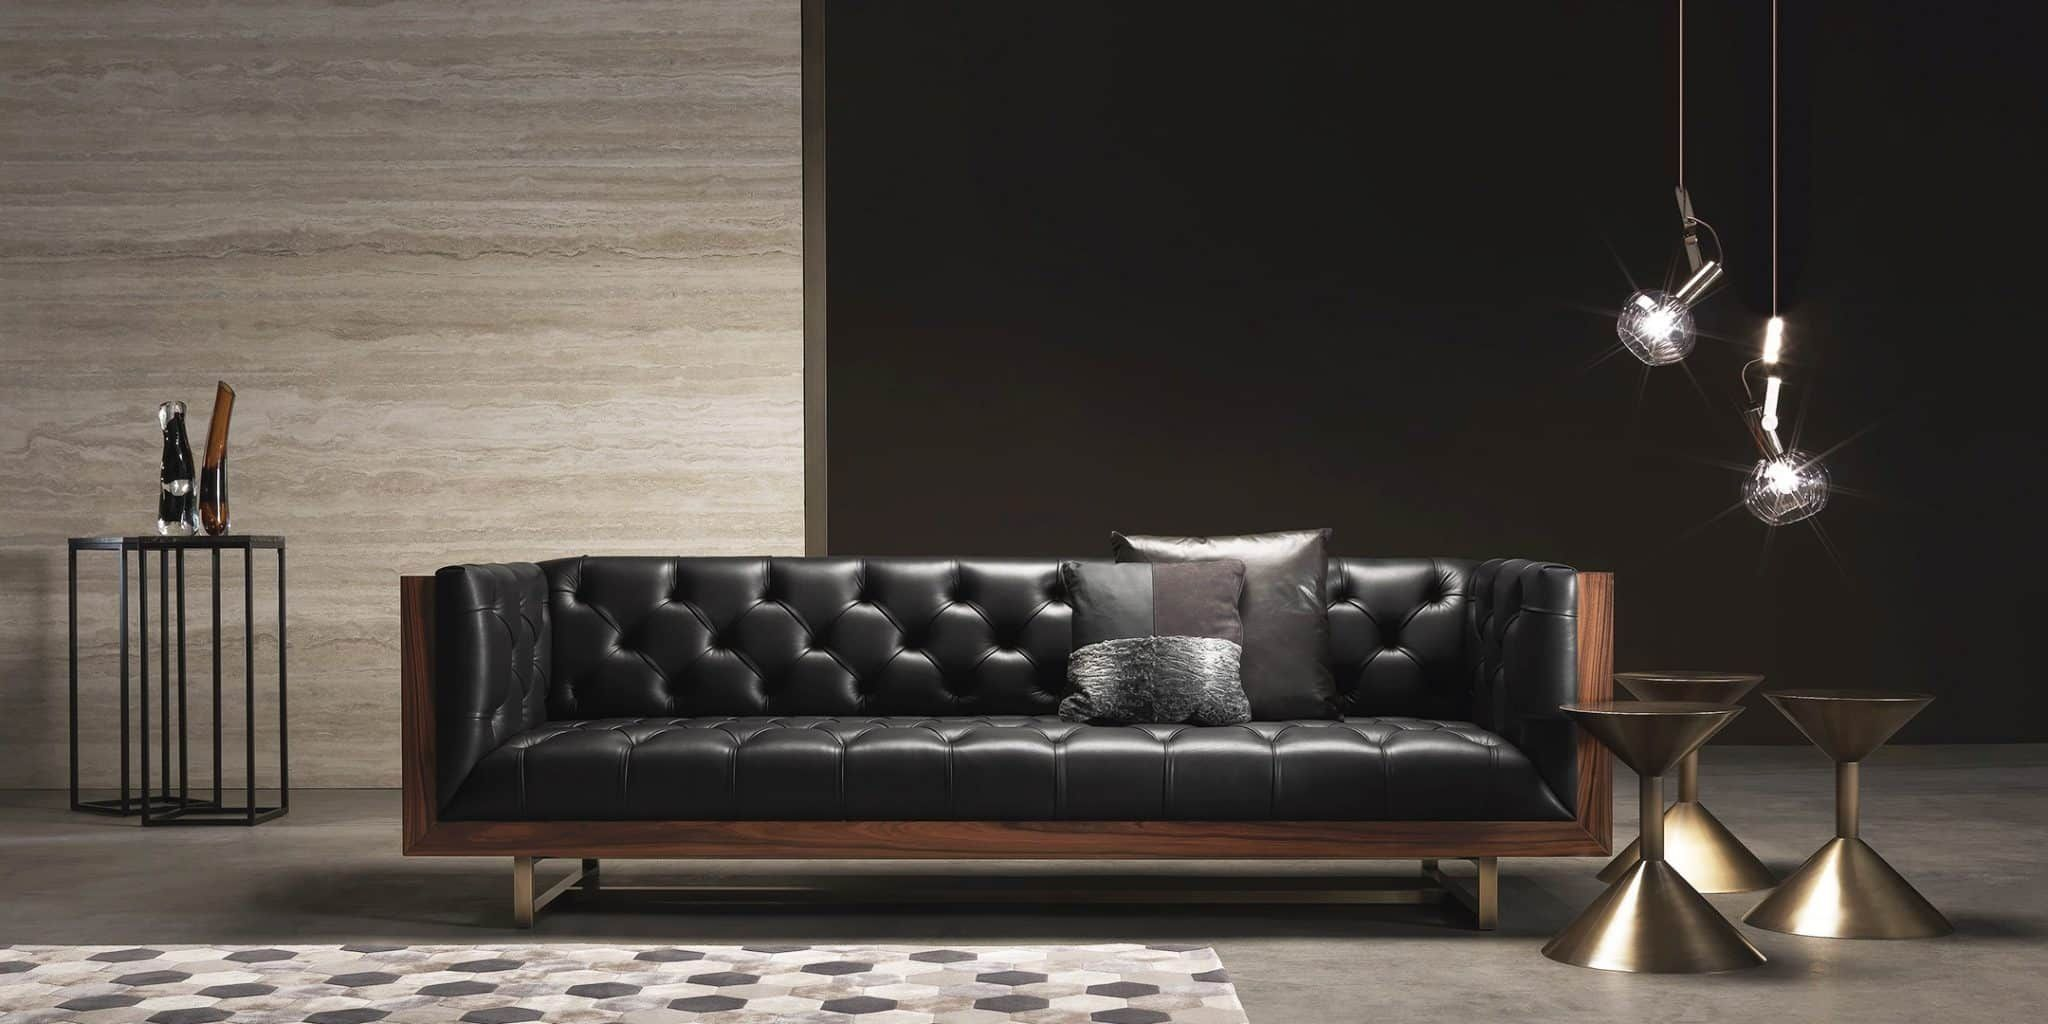 Gianfranco Ferre Home International And Metropolitan Style Def Contemporary Designers Furniture In 2020 Luxury Furniture Brands Contemporary Furniture Design Luxury Furniture